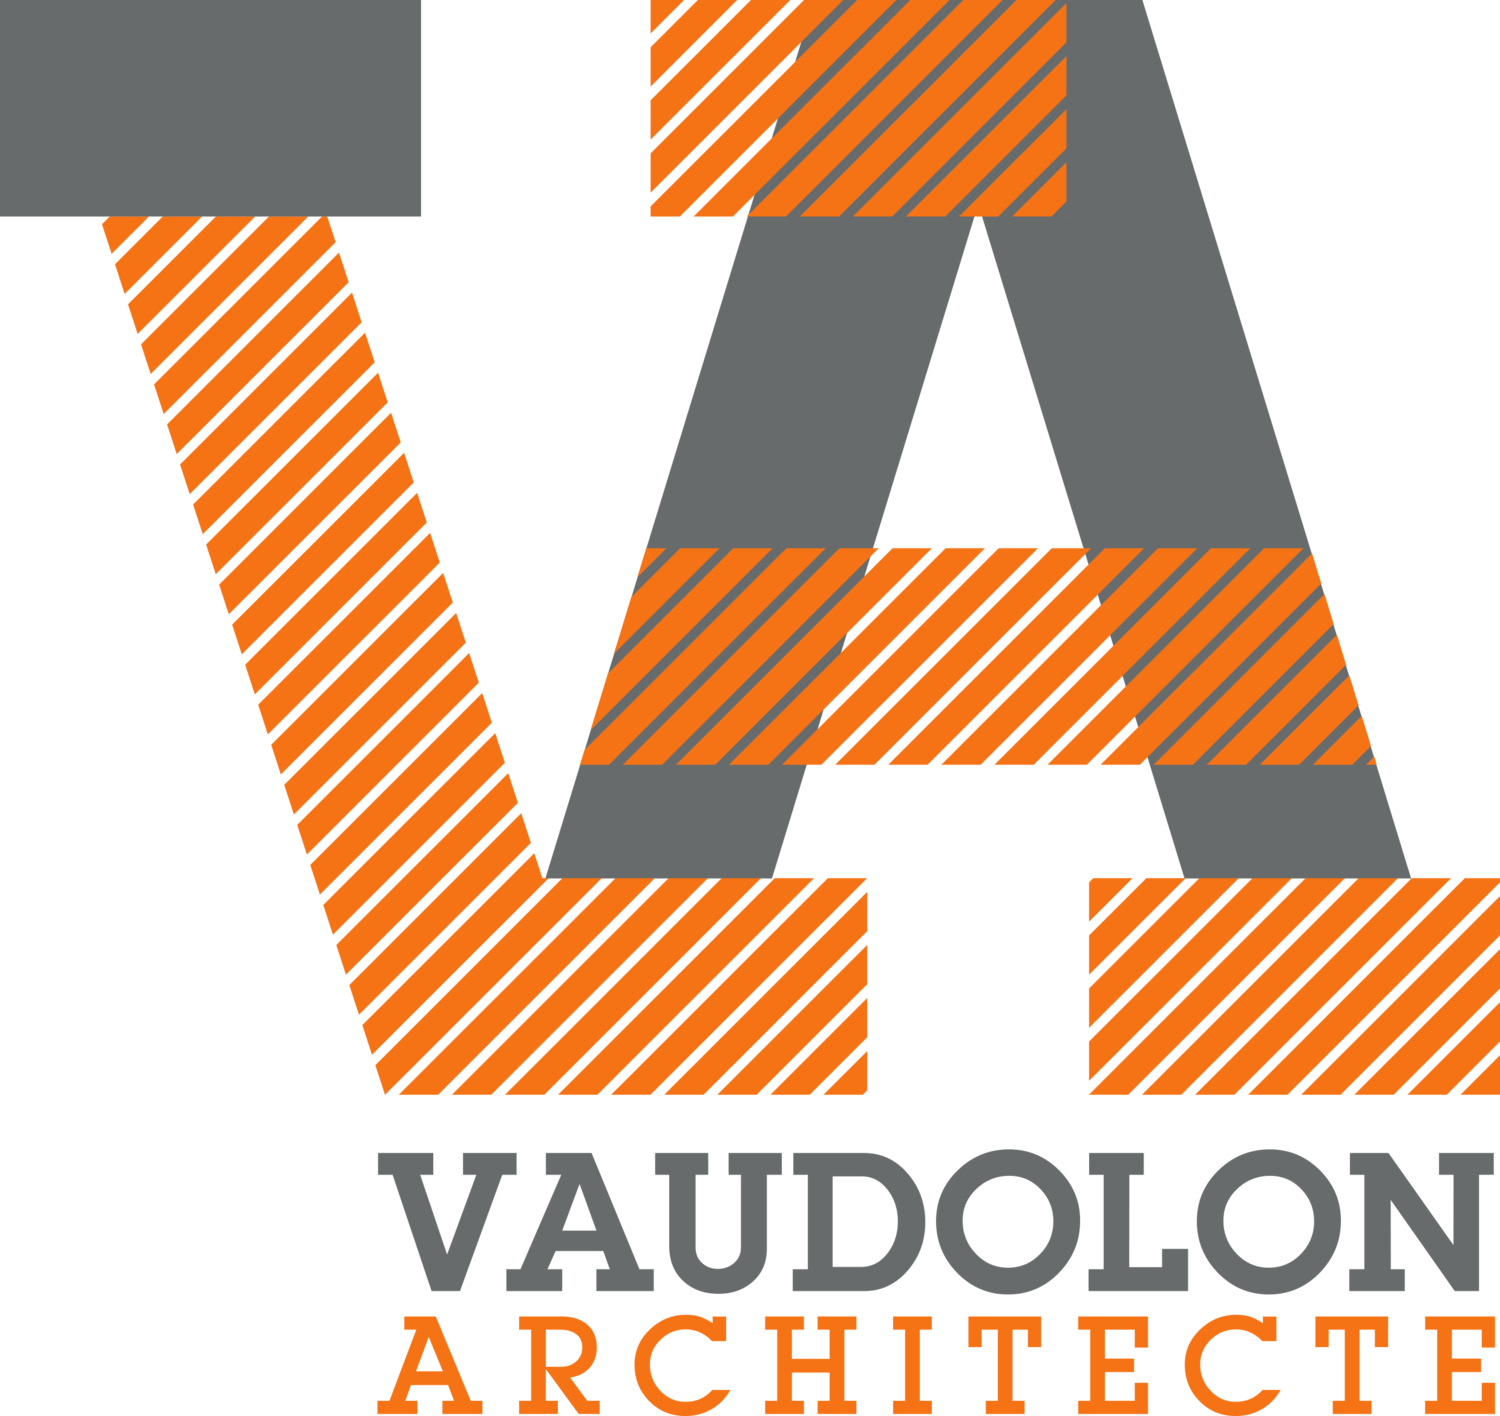 Thierry Vaudolon Architecte